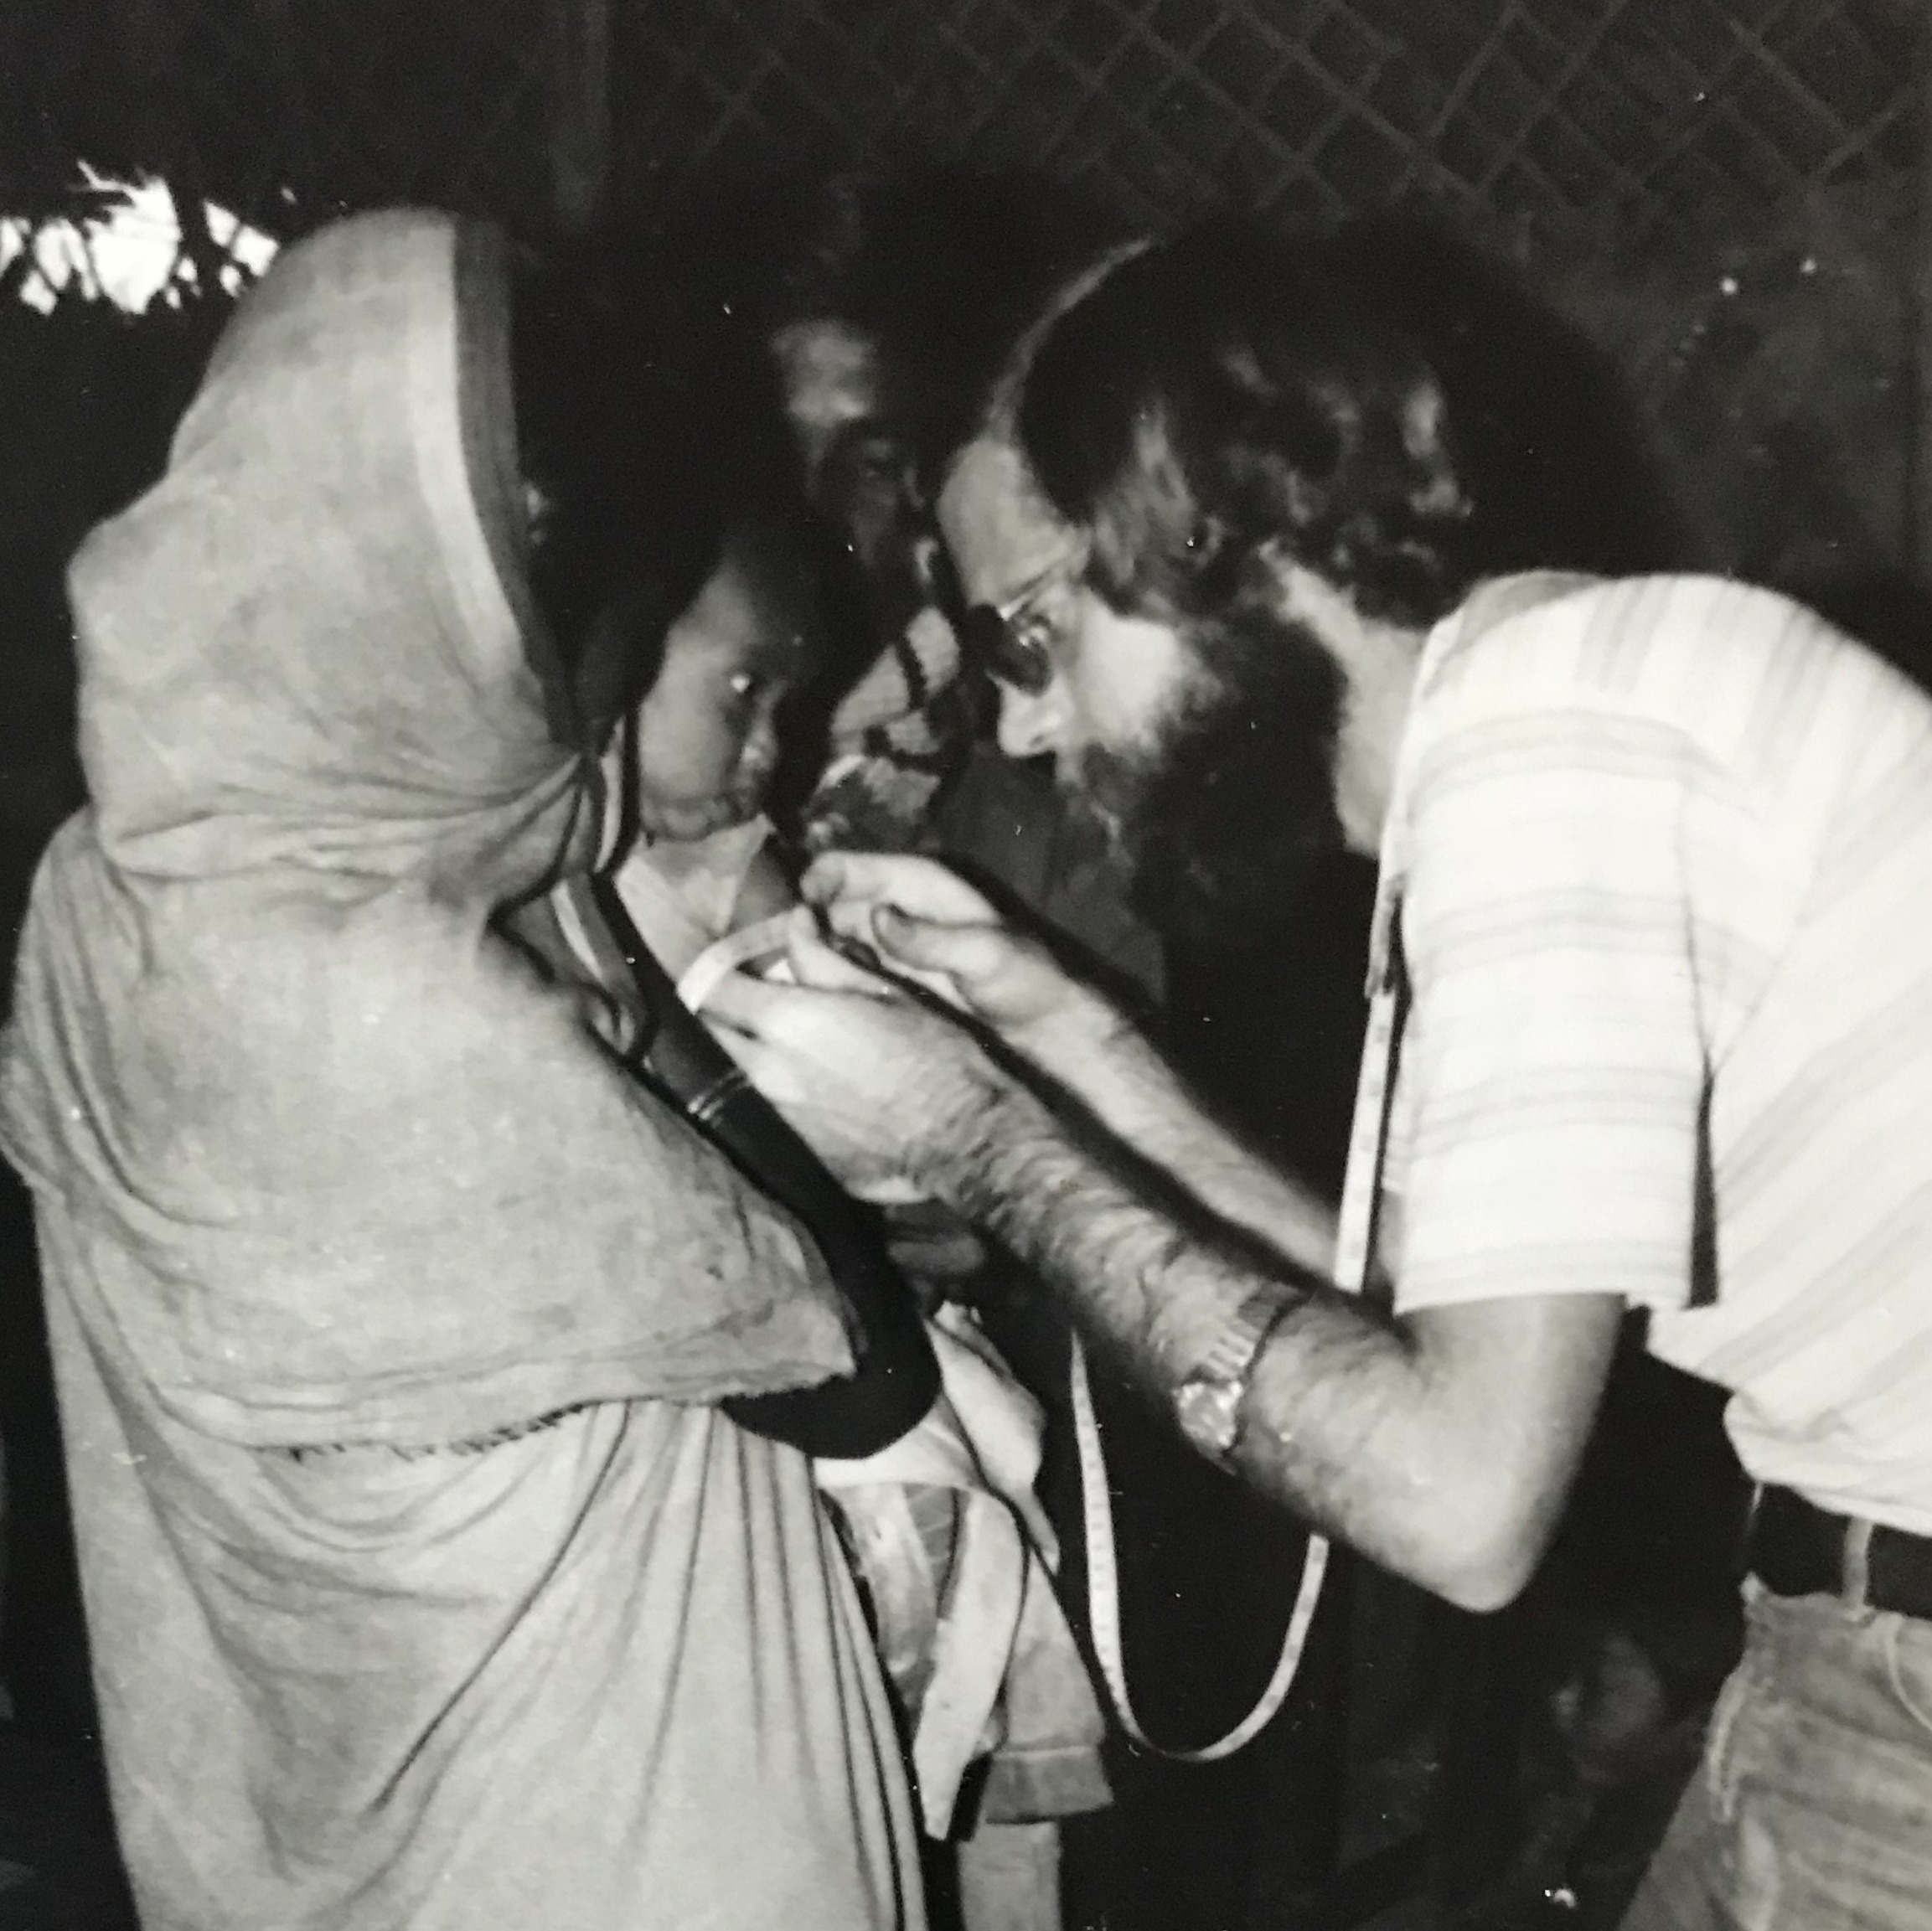 eith West, checking a young Bangladeshi for signs of malnutrition at a Concern clinic in the 1970s.